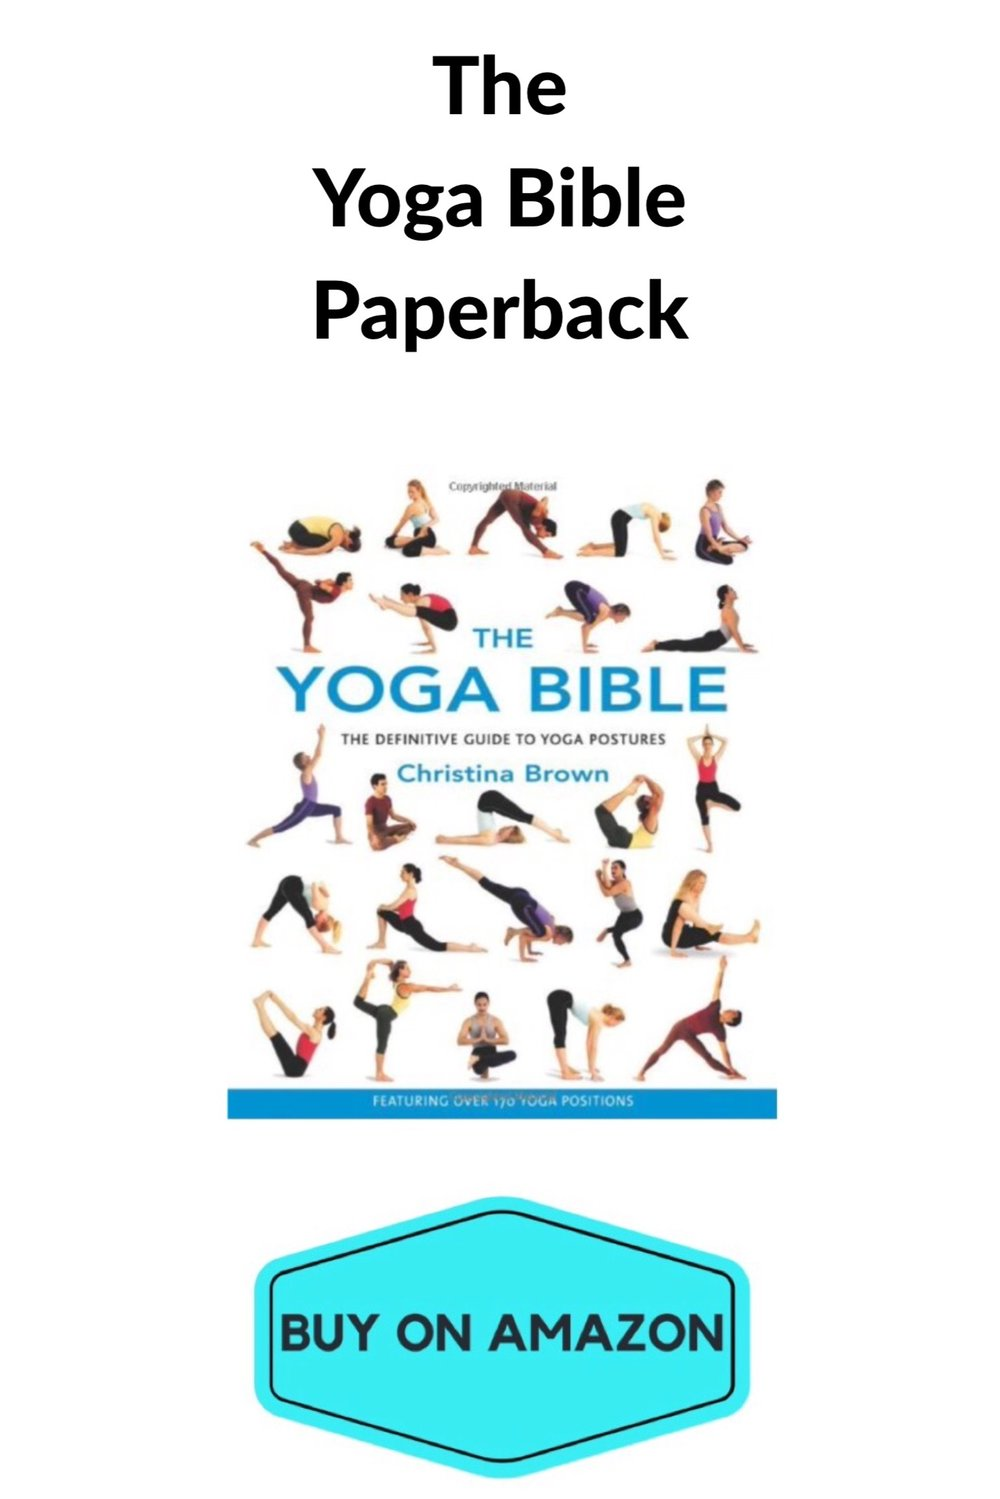 The Yoga Bible Paperback